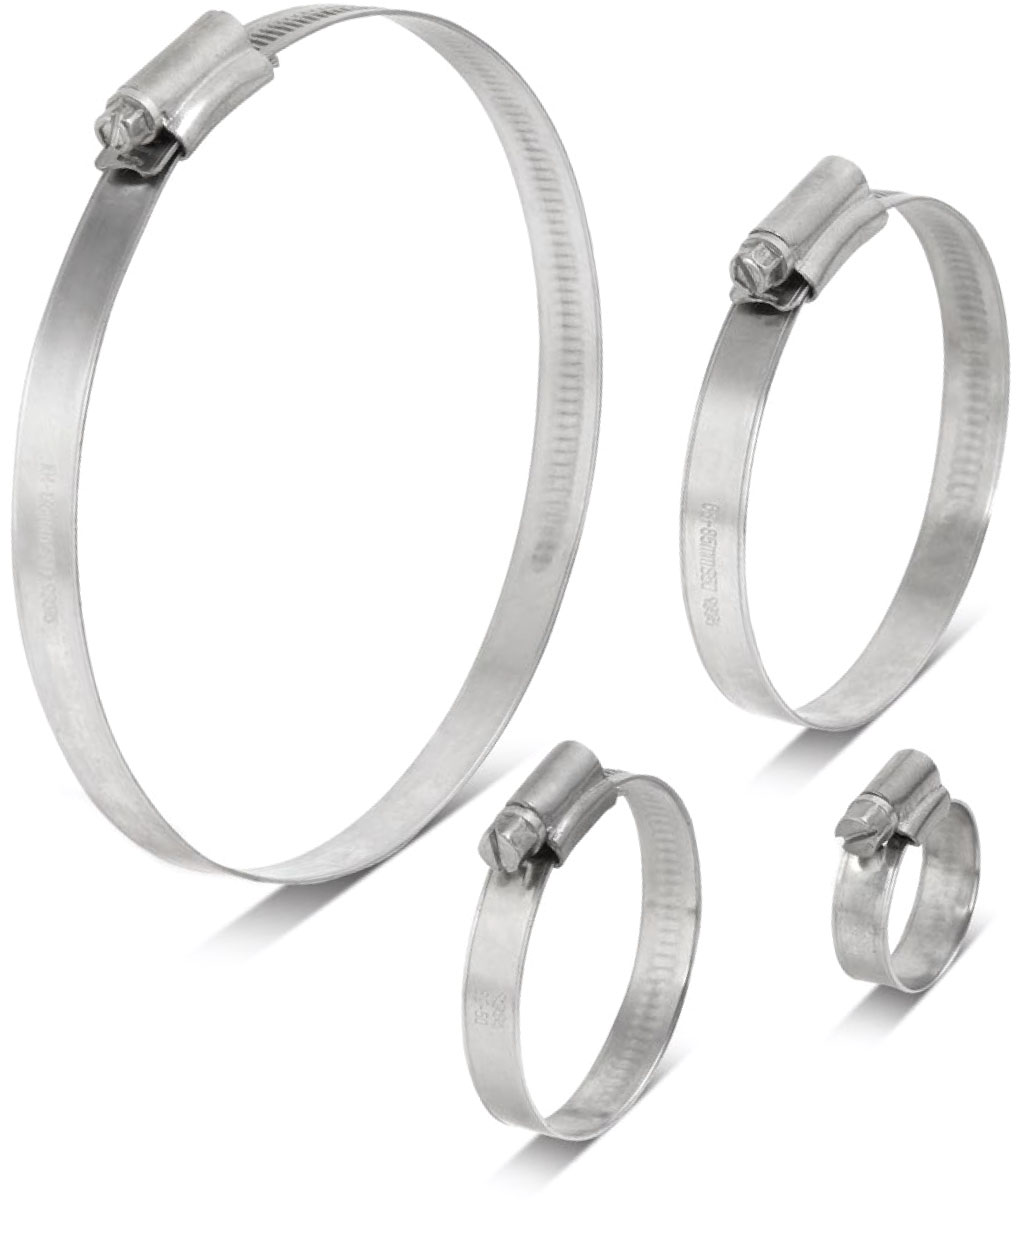 Swedish-Style Hose Clamps